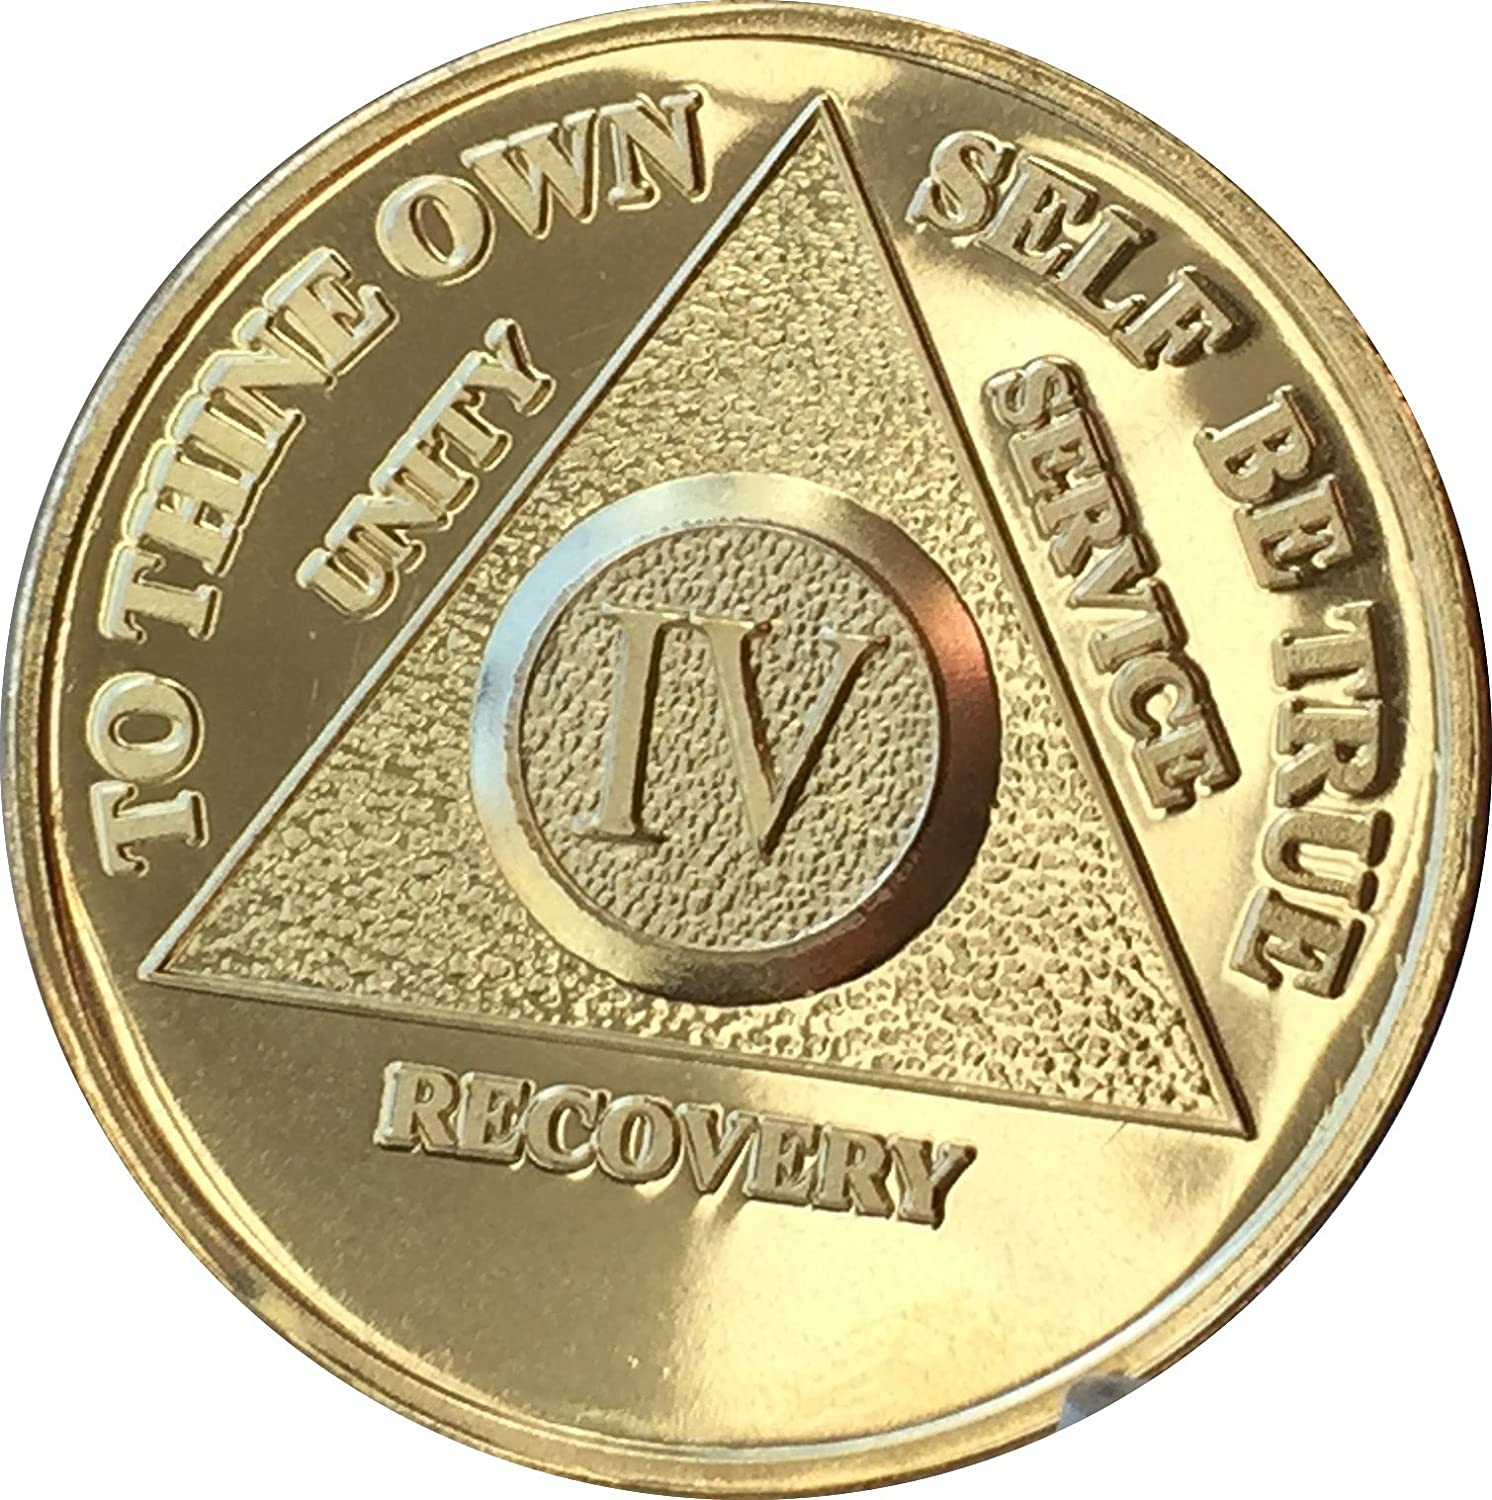 1 Year 24k Gold Plated AA Medallion Anniversary Chip